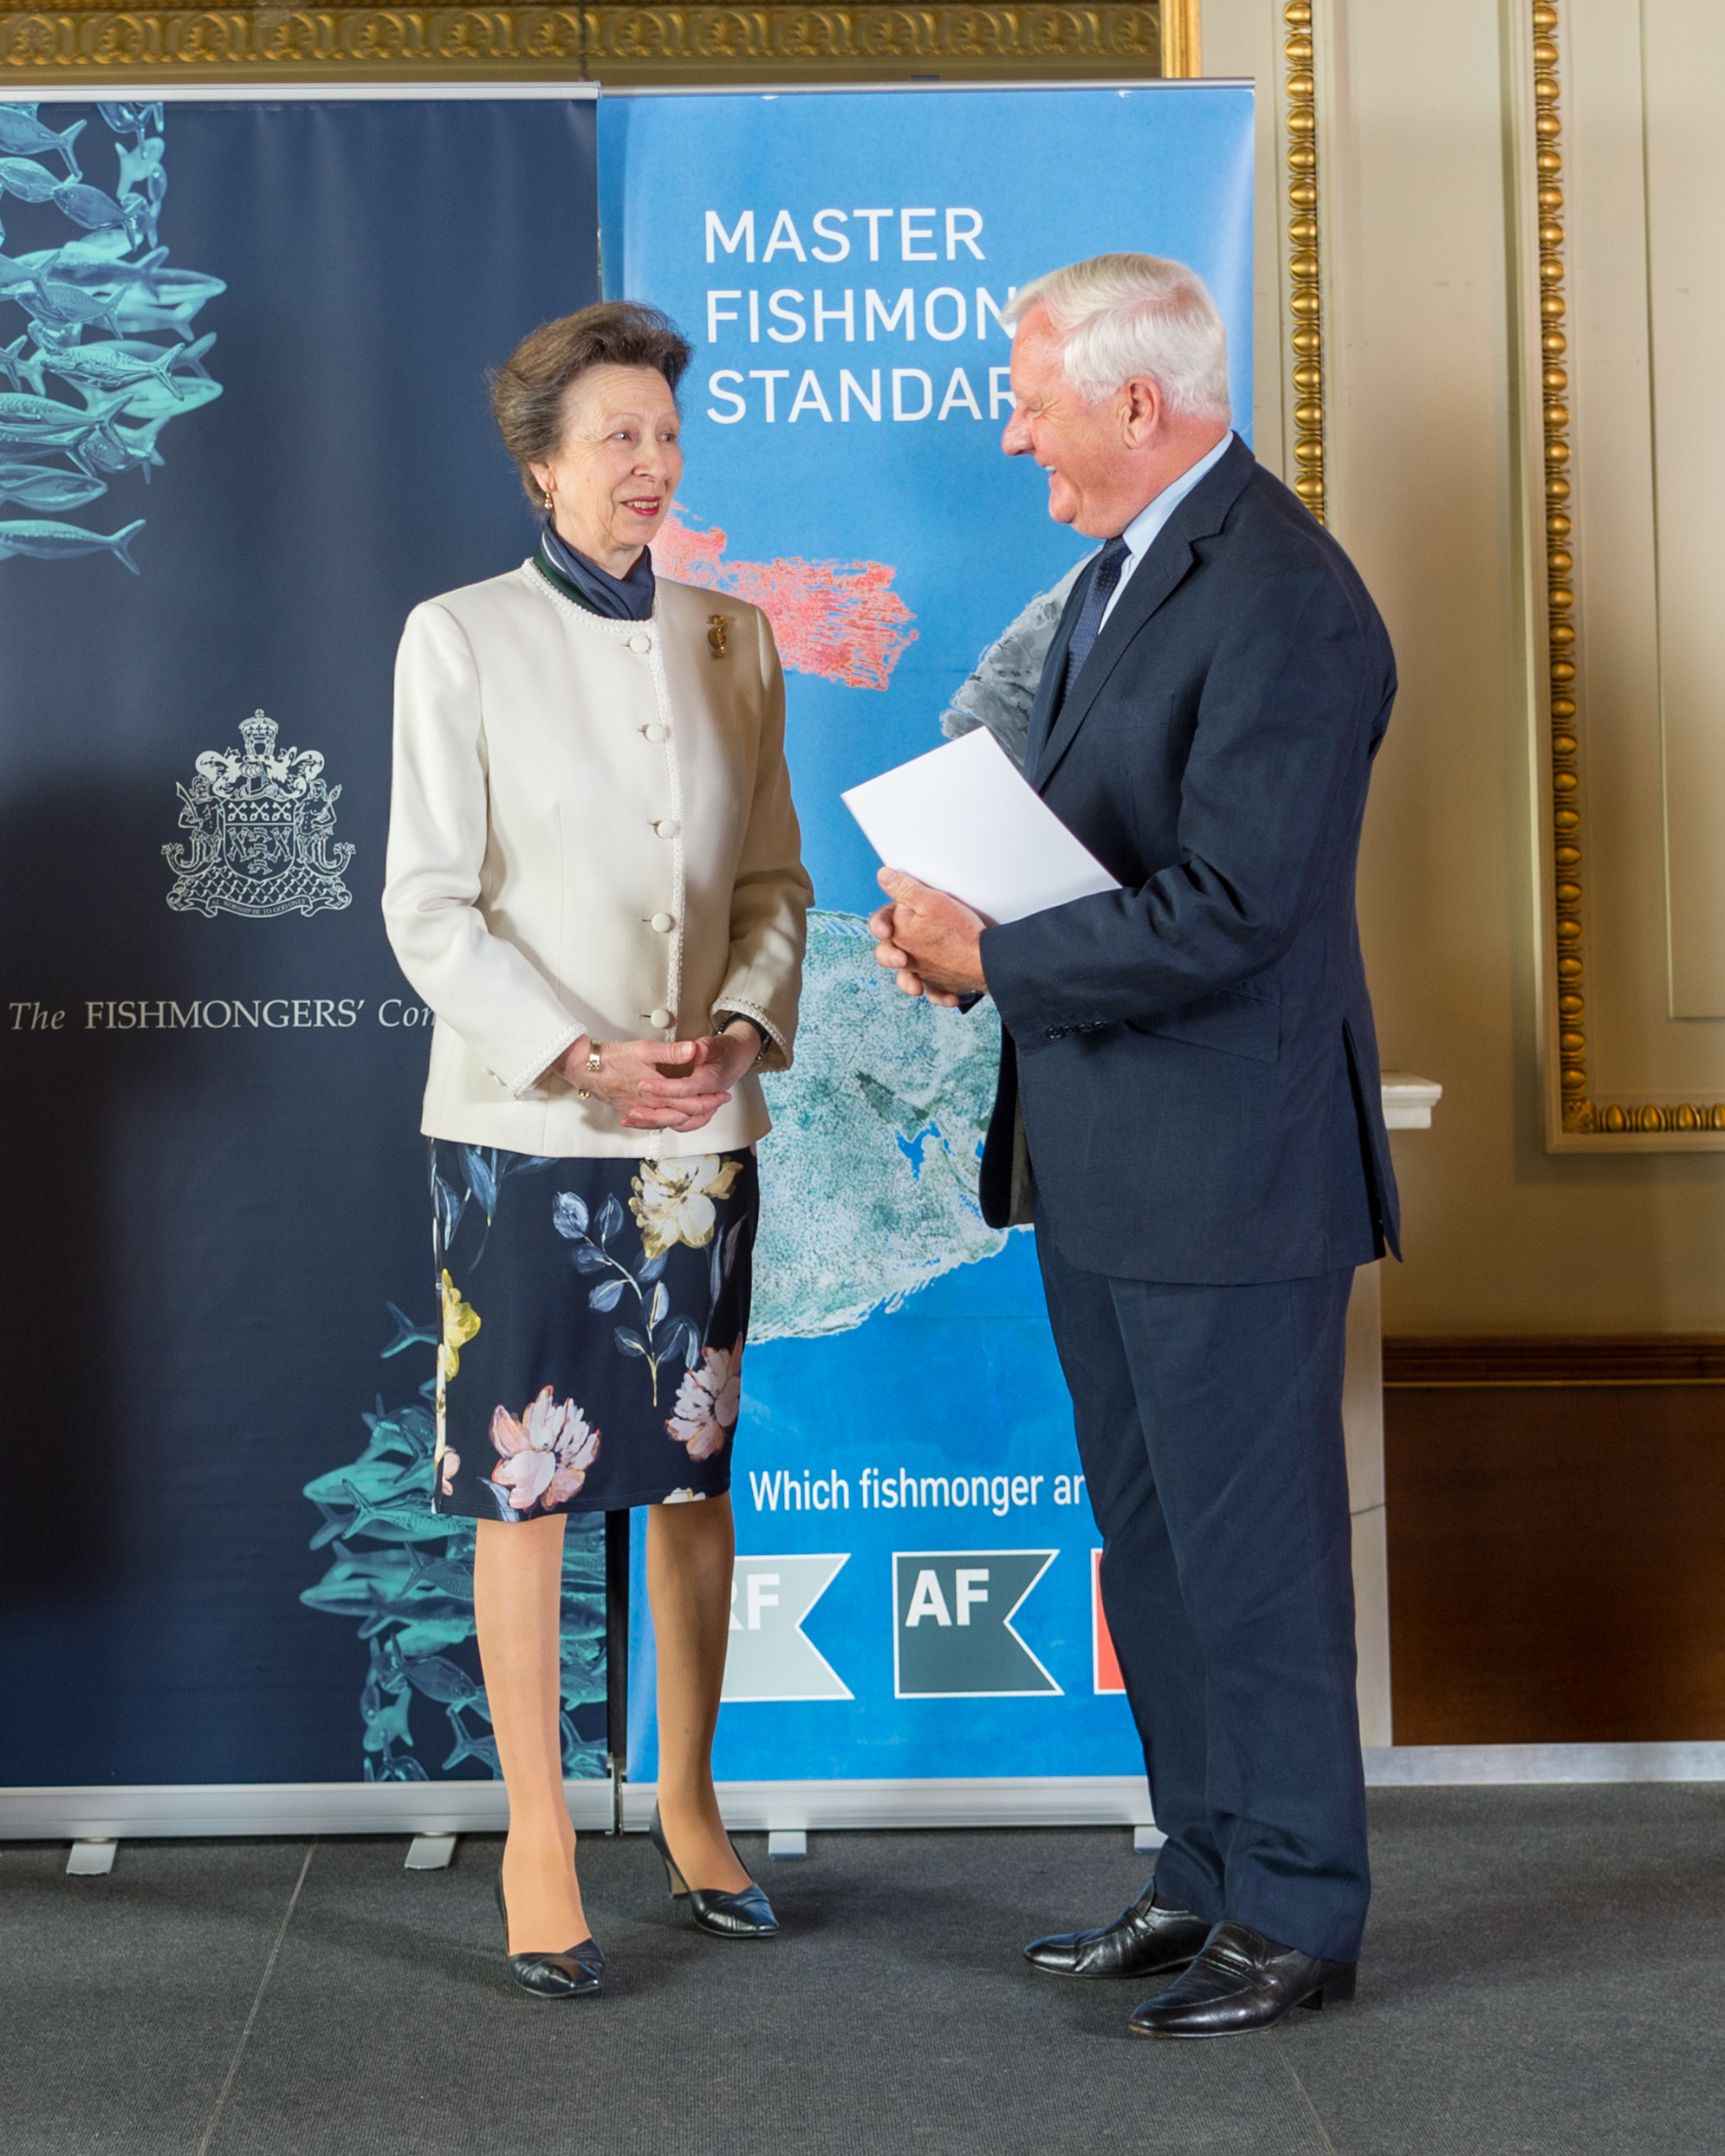 Presenting the Master Fishmongers' Awards